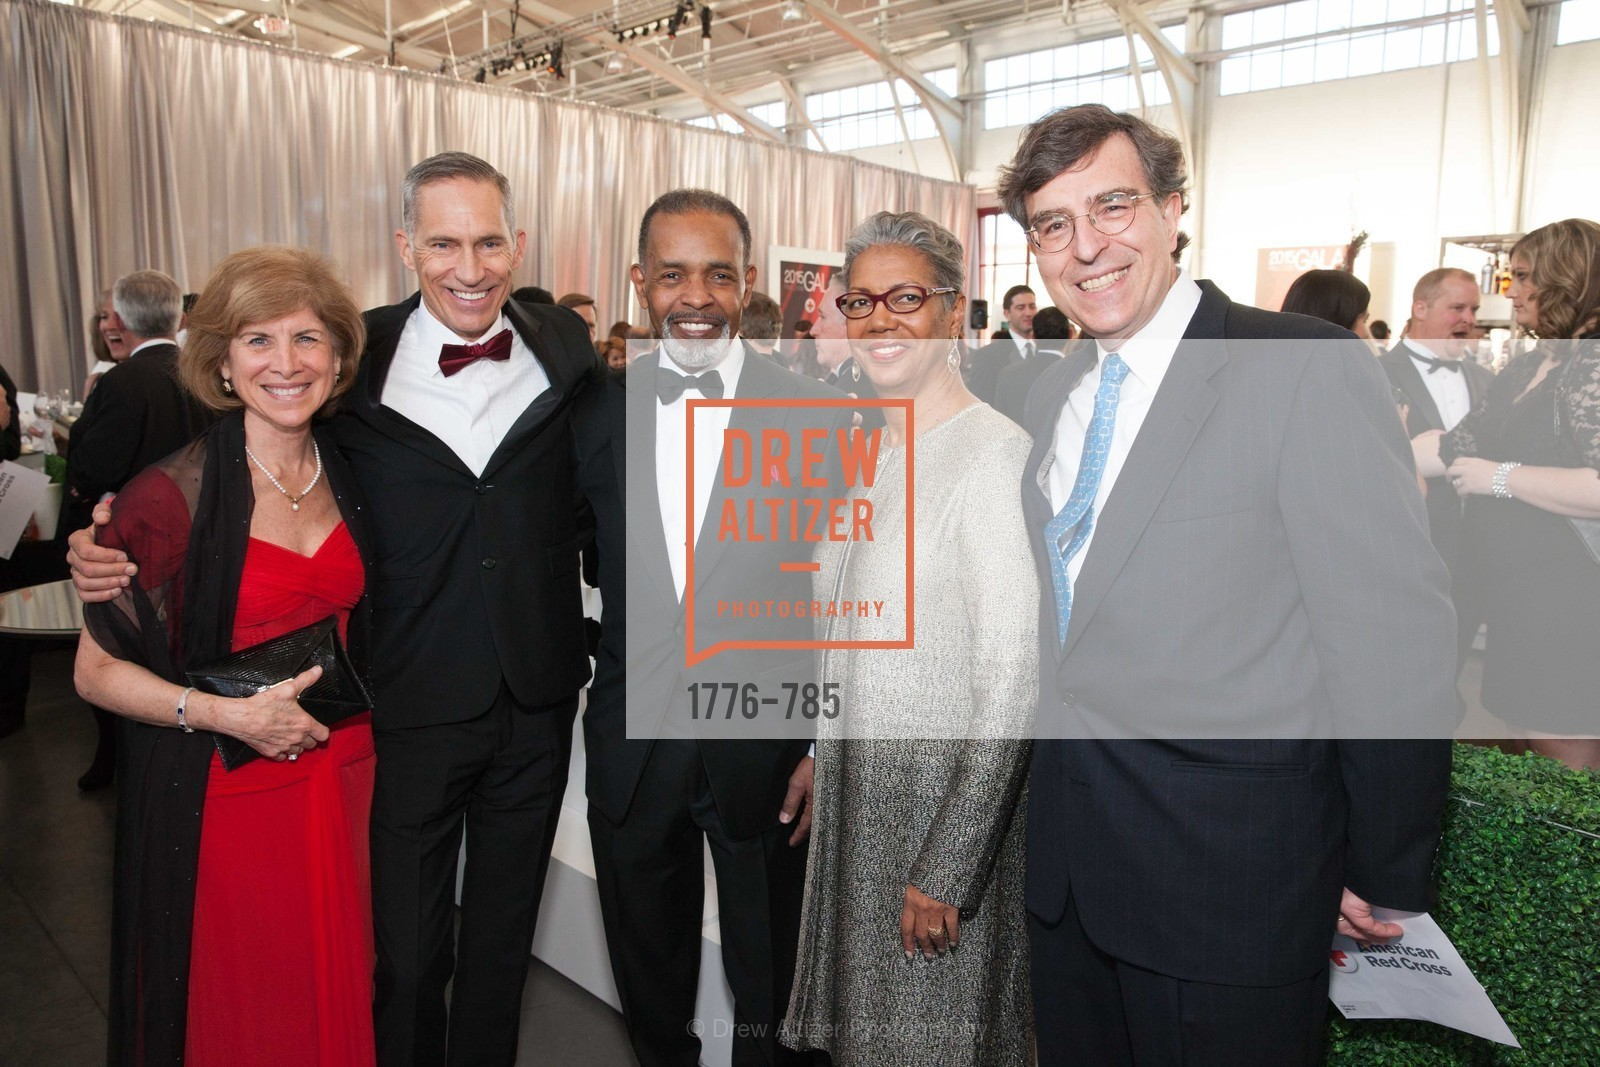 Gail McGovern, Mark Cloutier, Joe Madison, Sharon Madison, Neal Litvack, 2015 RED CROSS Gala, US, April 12th, 2015,Drew Altizer, Drew Altizer Photography, full-service agency, private events, San Francisco photographer, photographer california